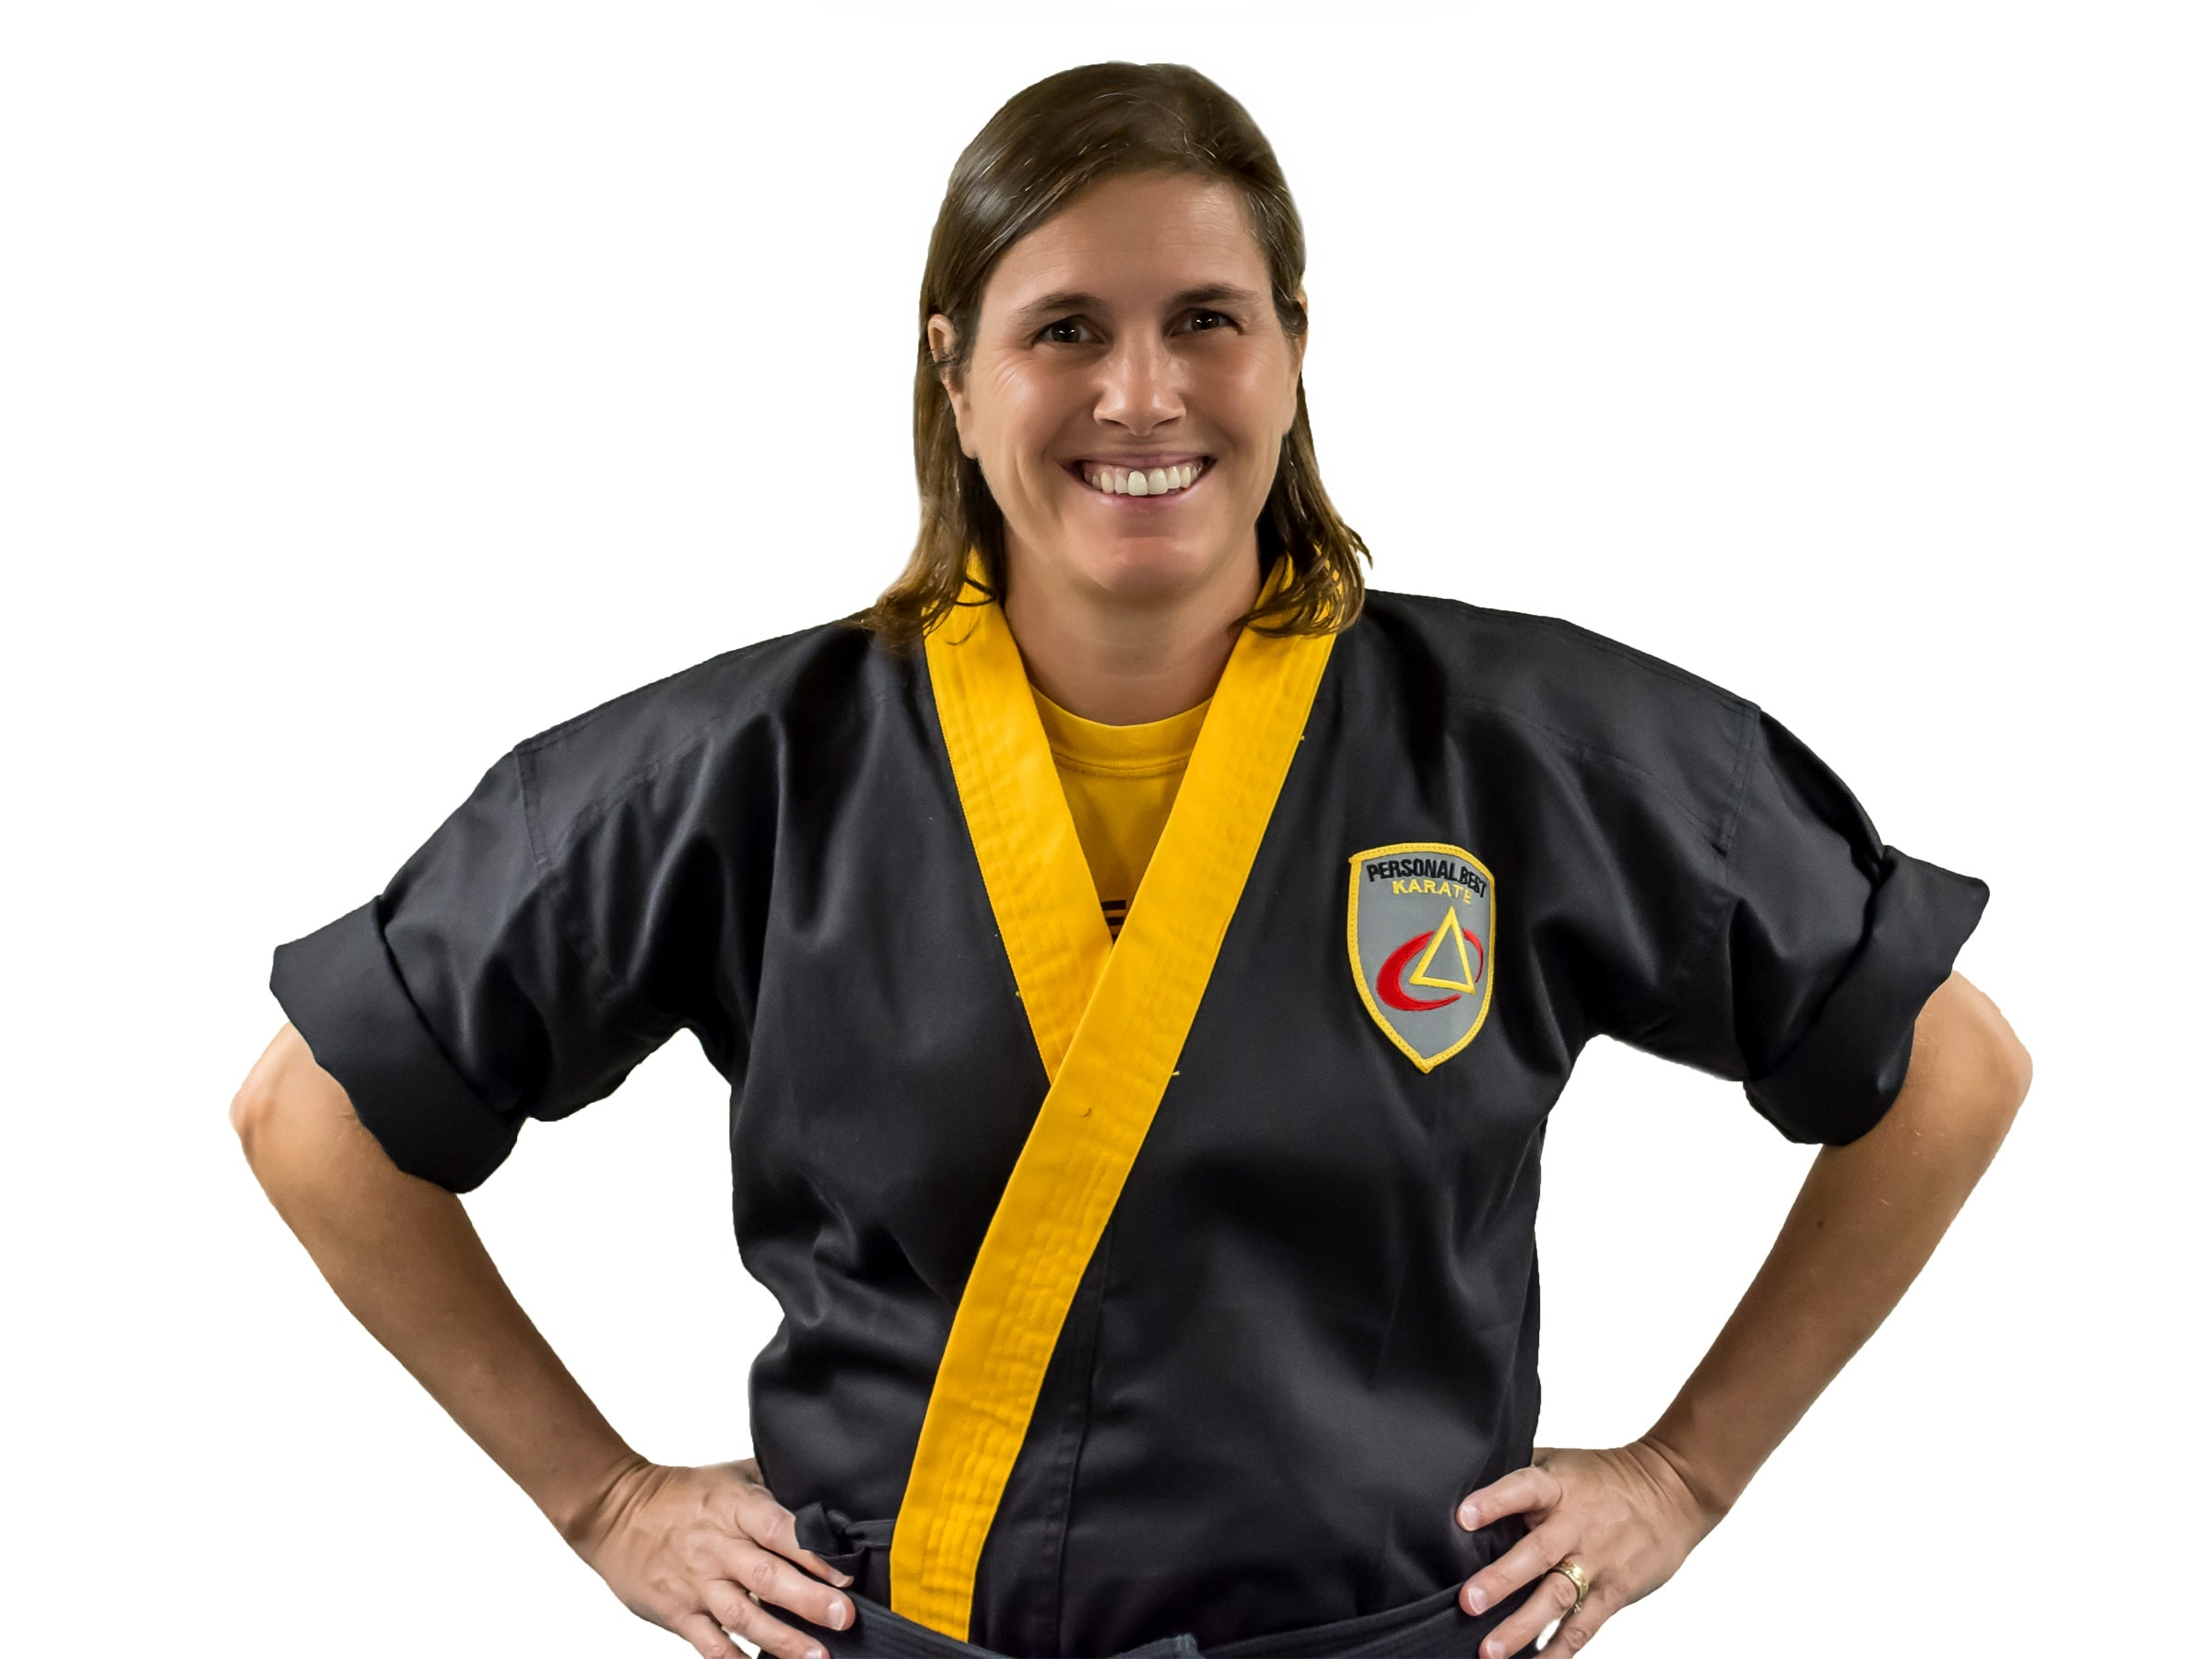 Barbara Mosca in Norton - Personal Best Karate